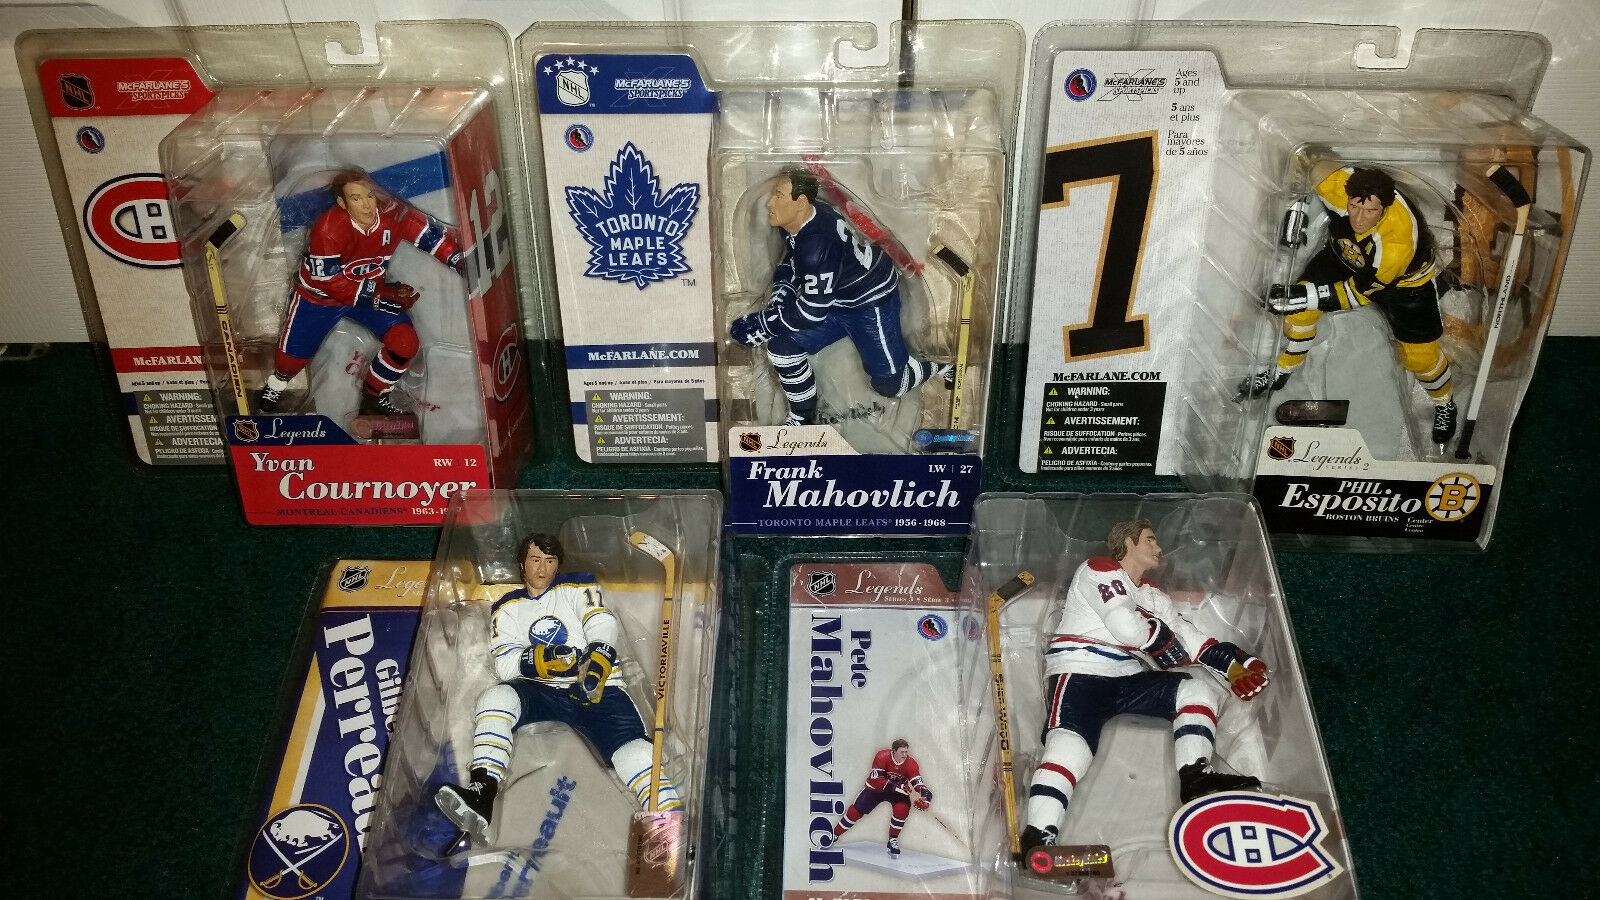 Nhl - legende mcfarlane gilbert perreault pete mahovlich phil esposito cournoyer